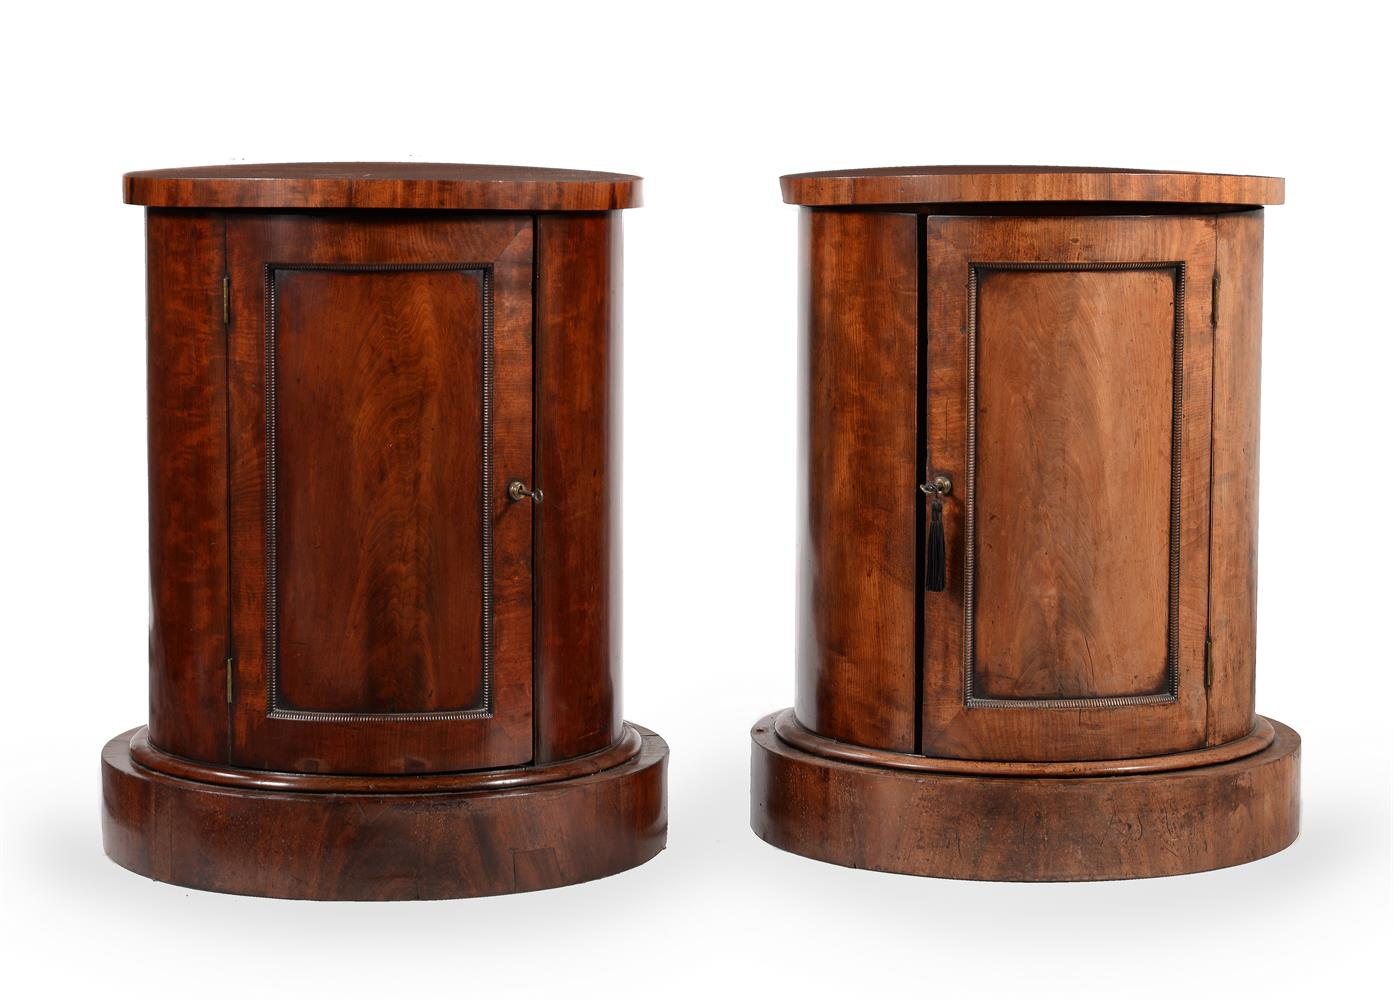 A PAIR OF GEORGE IV MAHOGANY CYLINDRICAL BEDSIDE OR PEDESTAL CUPBOARDS, CIRCA 1825 - Image 3 of 5